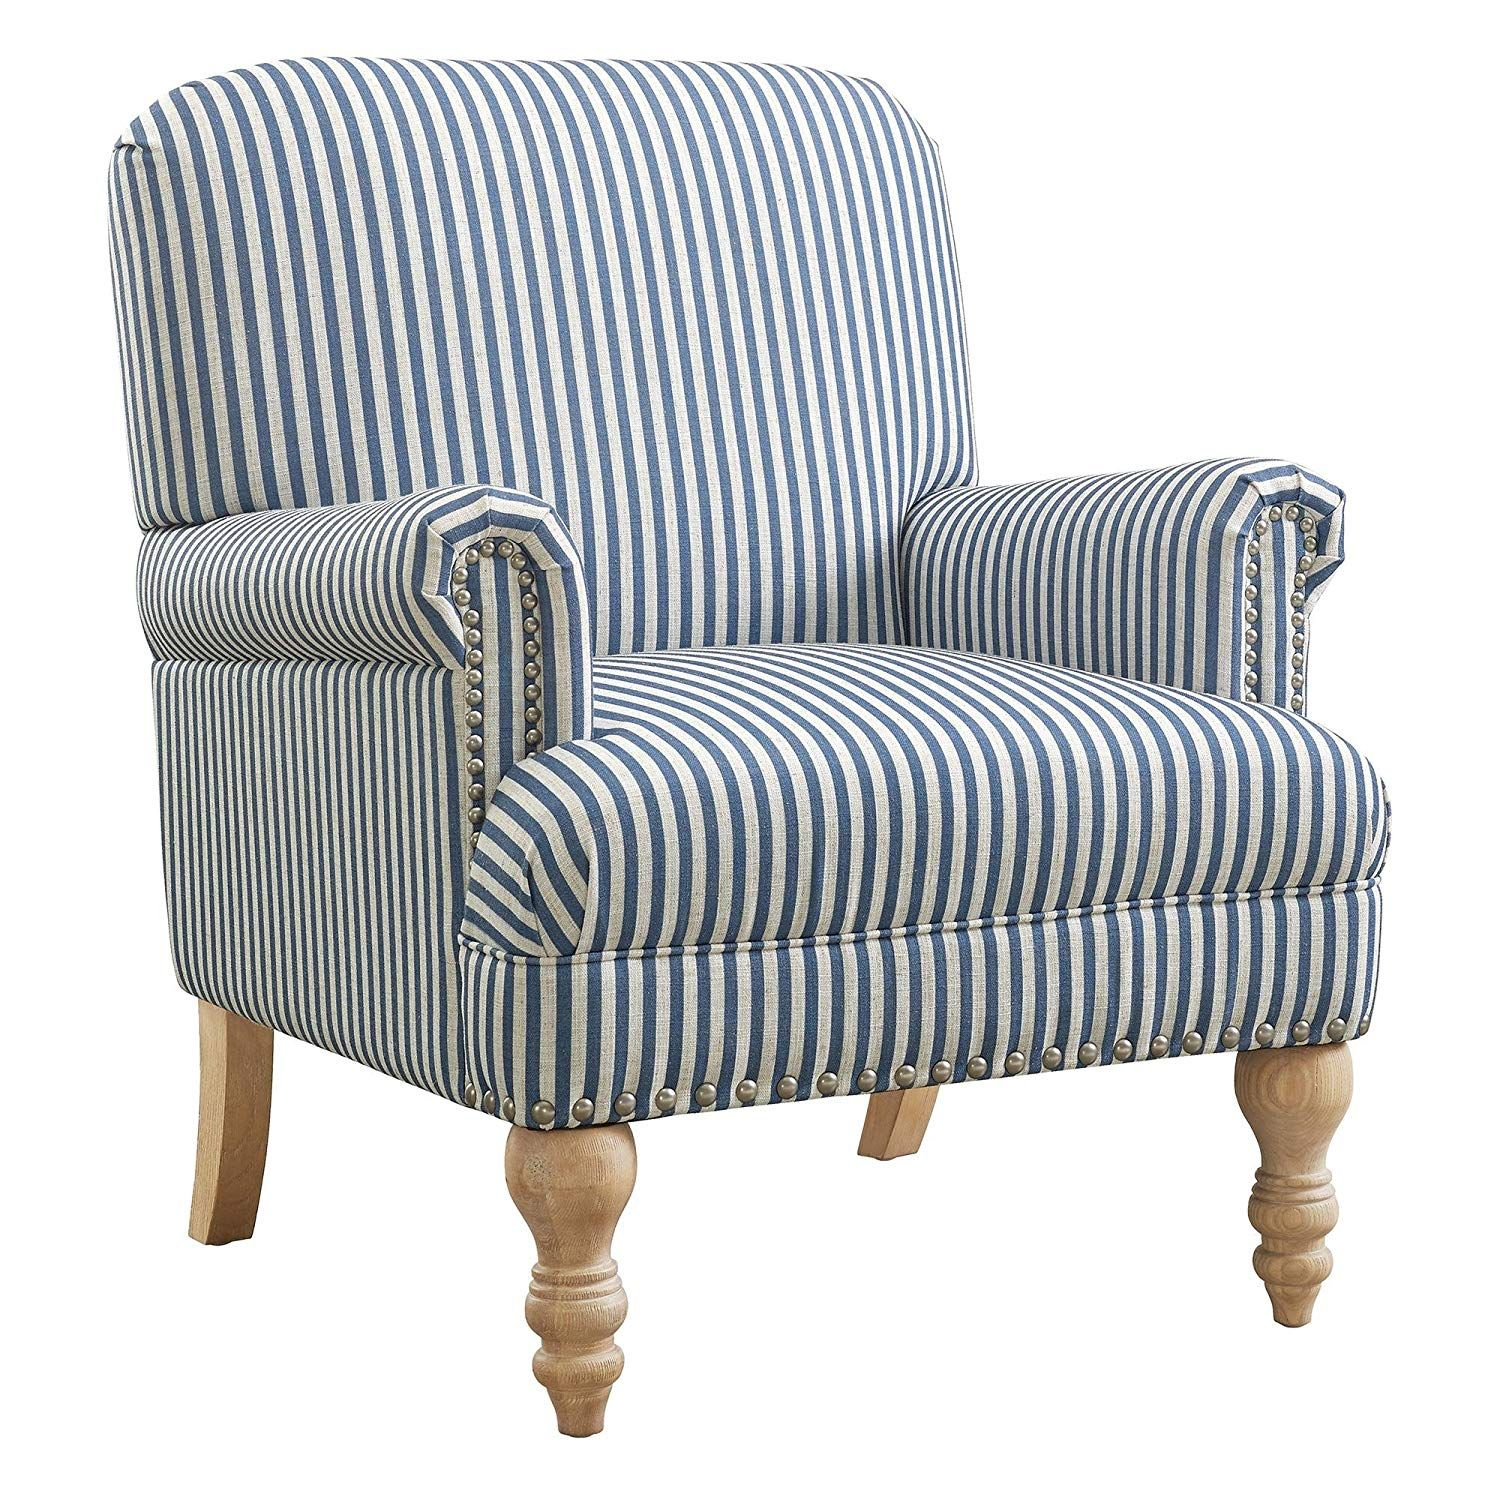 I Am Trying To Decide If This Chair Would Match This Post May Contain Affiliate Links If You Deci Blue Accent Chairs Living Room Furniture Chairs Furniture